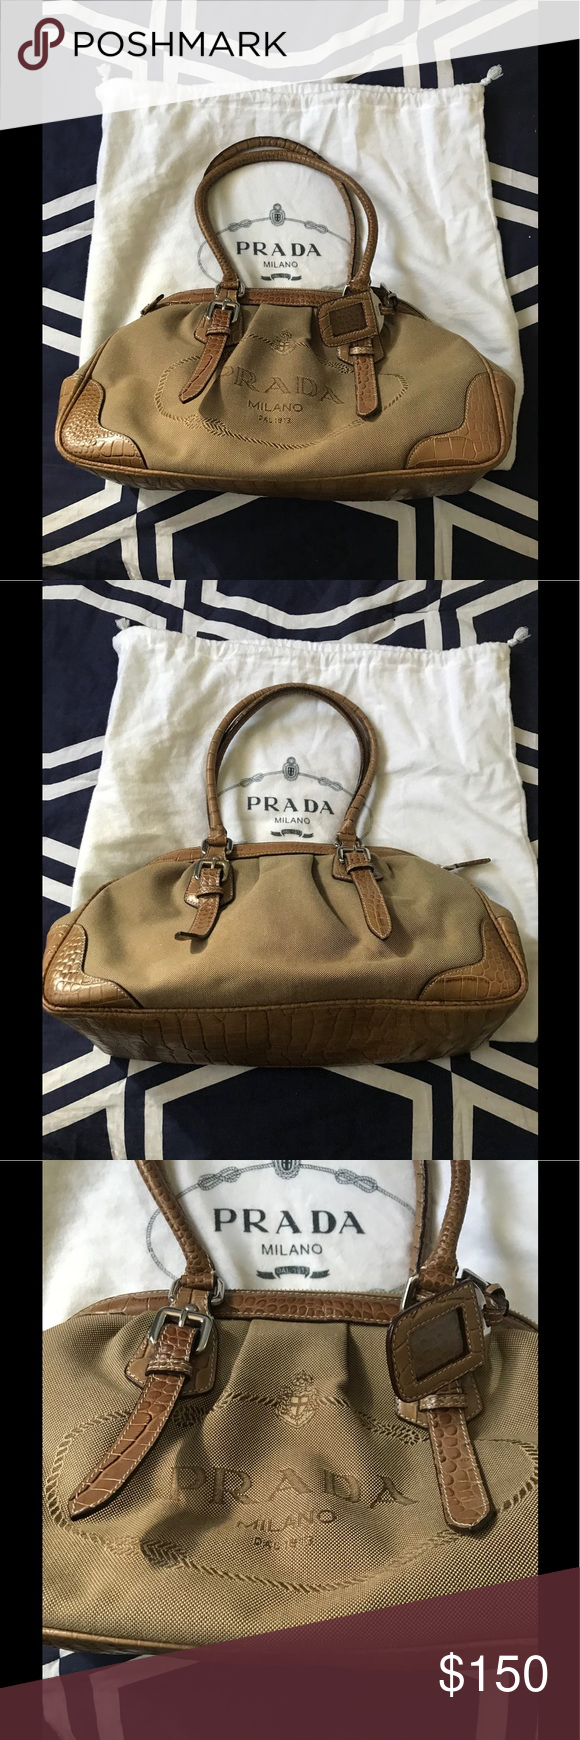 3abf17bae32b Shop Women s Prada Tan size OS Bags at a discounted price at Poshmark. In  new condition.